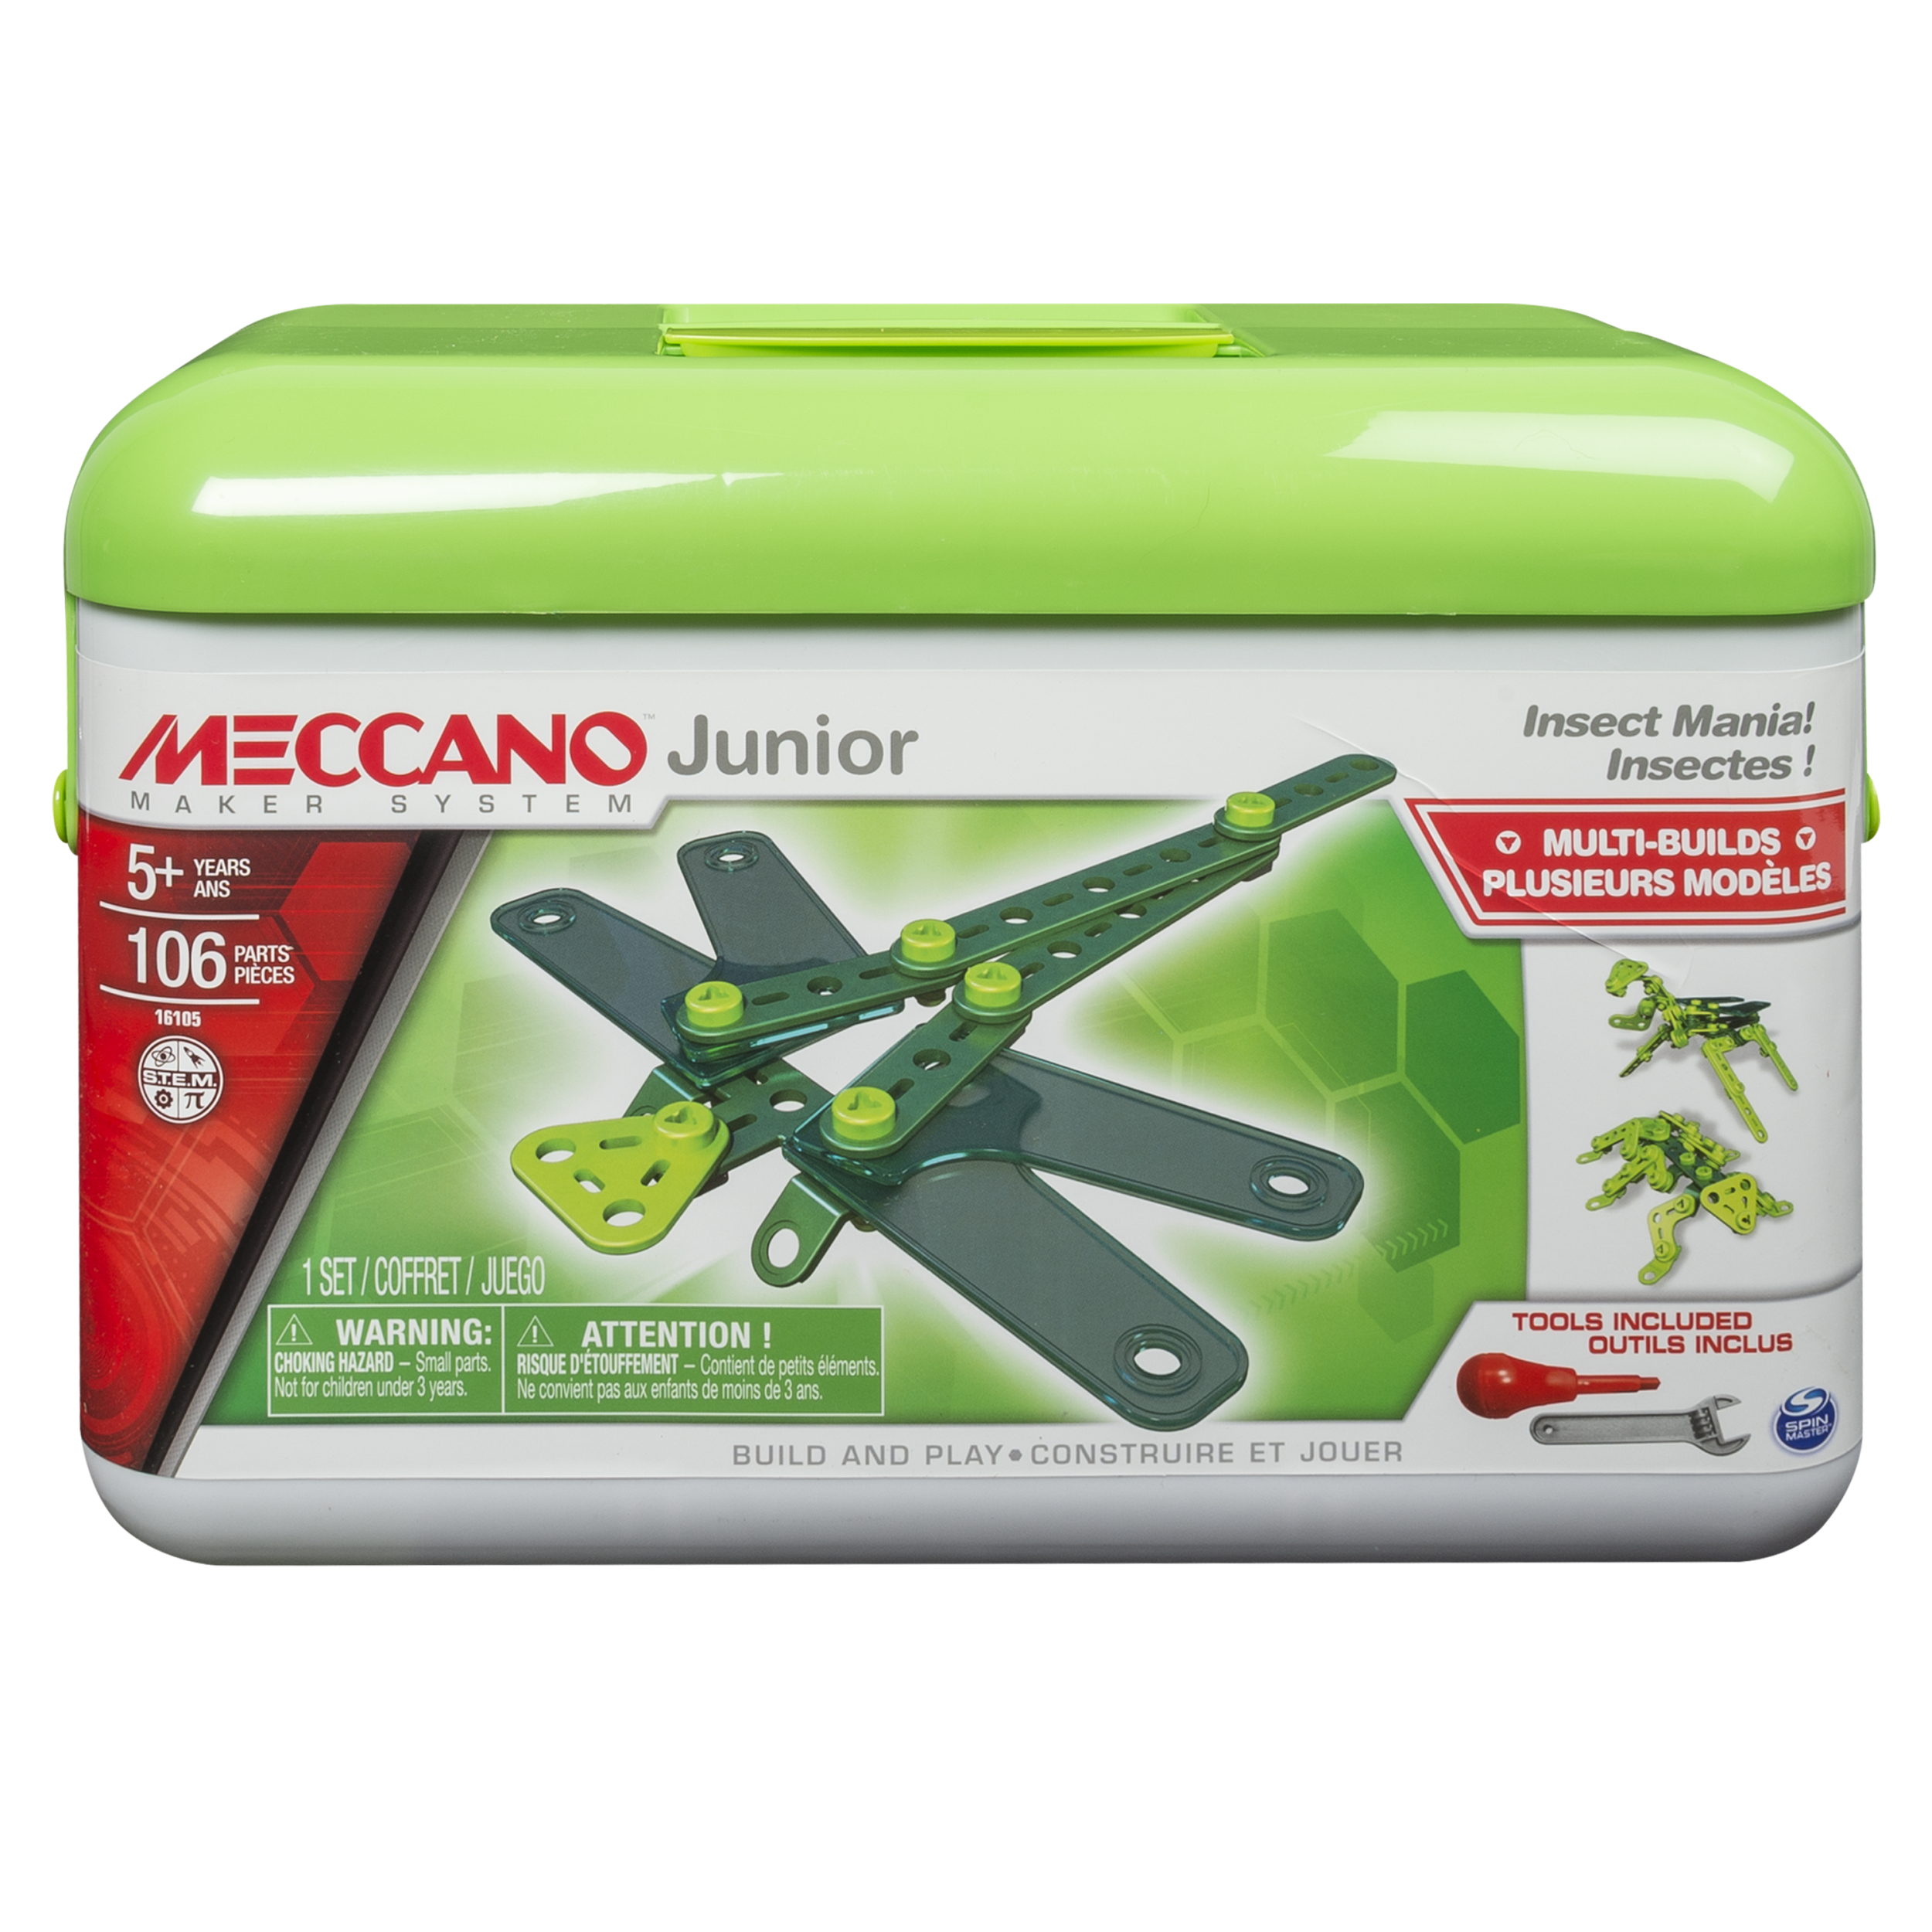 Meccano by Erector, Junior Toolbox, Insect Mania, 4 Model Building Kit